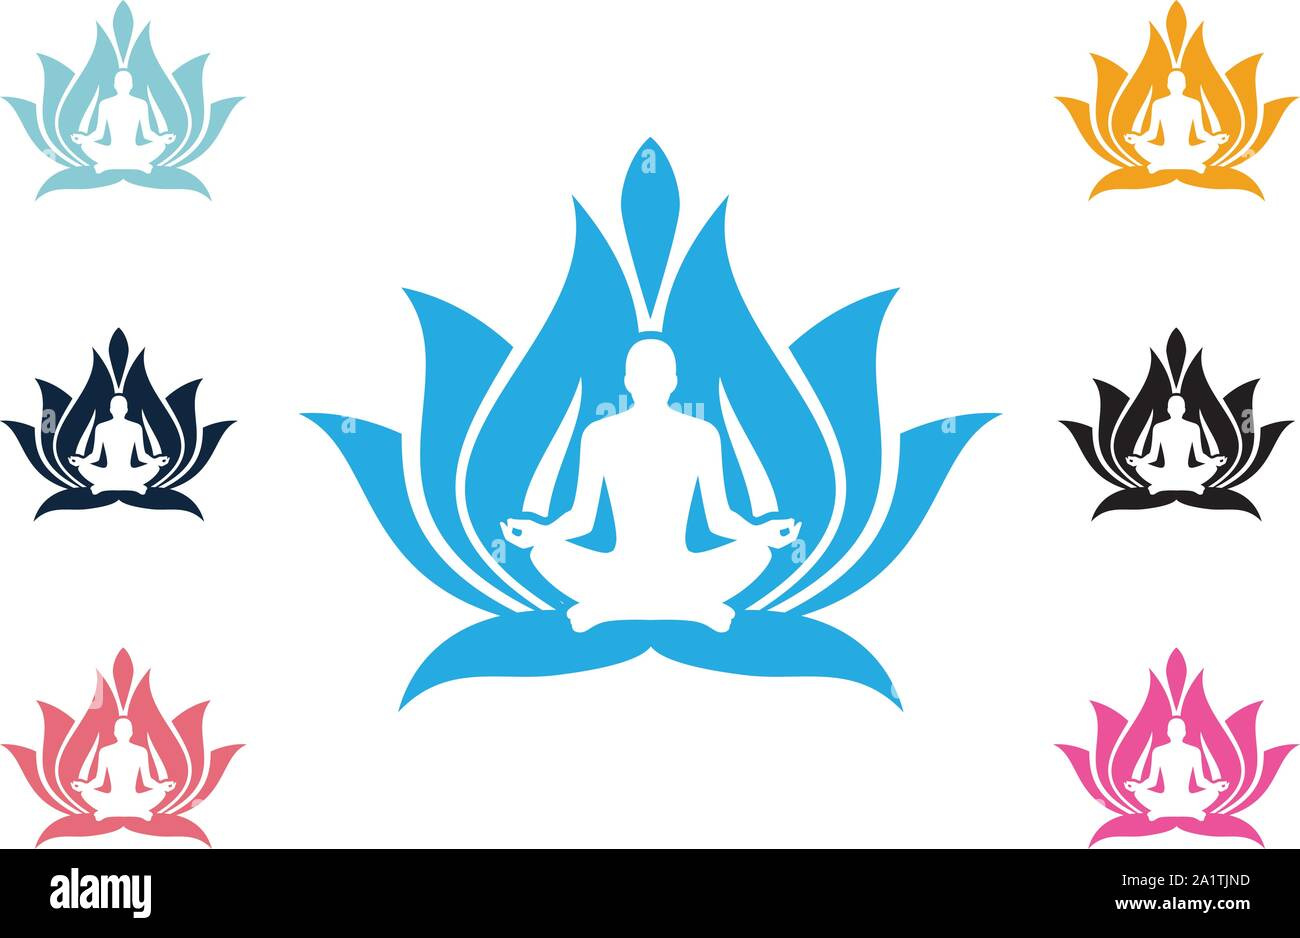 Yoga Logo Template Lotus Flower Logo With Human Silhouette Yoga Logo Vector Emblem Yoga Pose Vector Logo Design Template Beauty Spa Relax Stock Vector Image Art Alamy